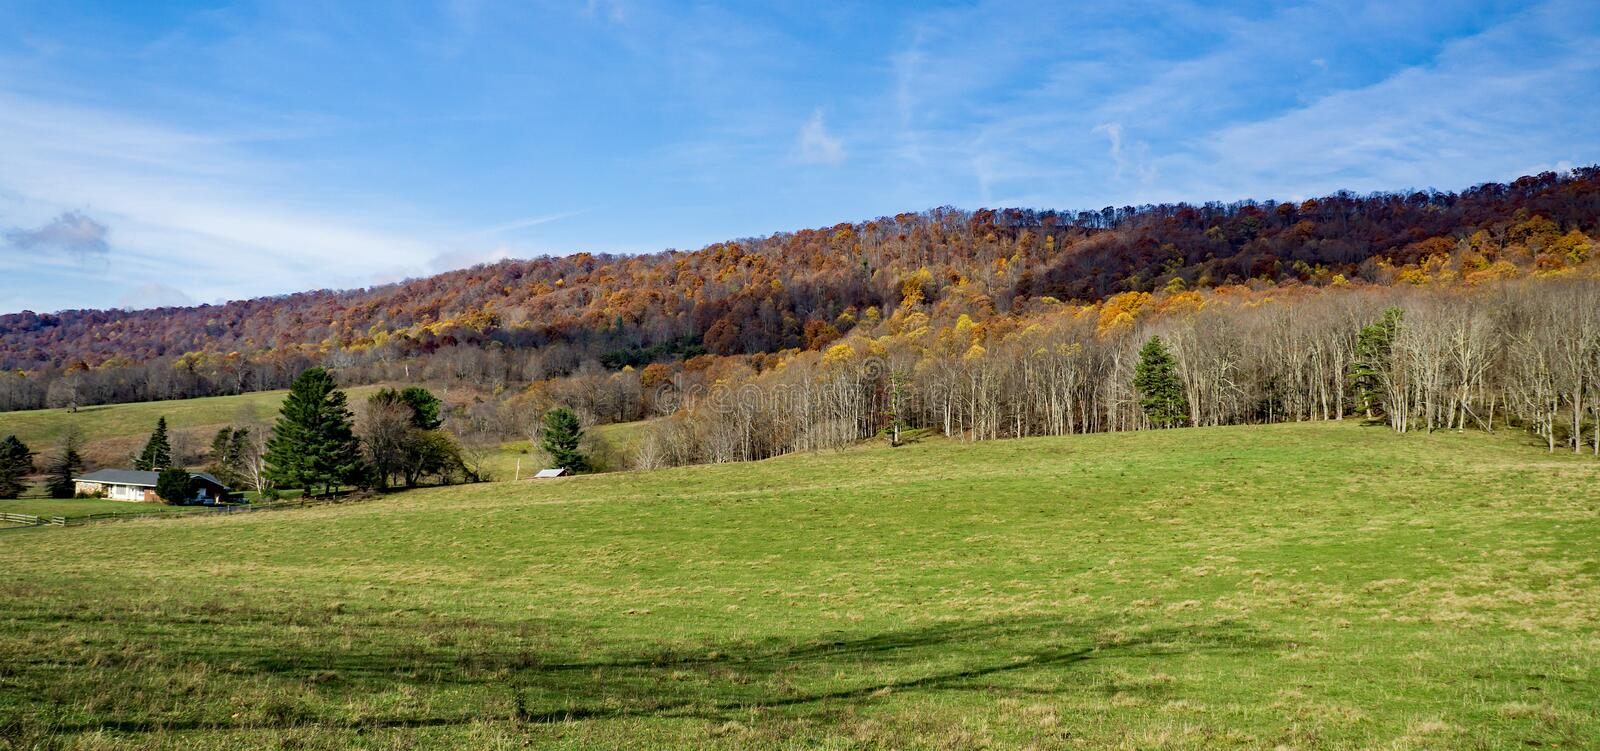 Autumn View from Johns Creek Mountain - 2. Autumn view from Johns Creek Mountain with a green meadow in the foreground located in Jefferson National Forest royalty free stock photo